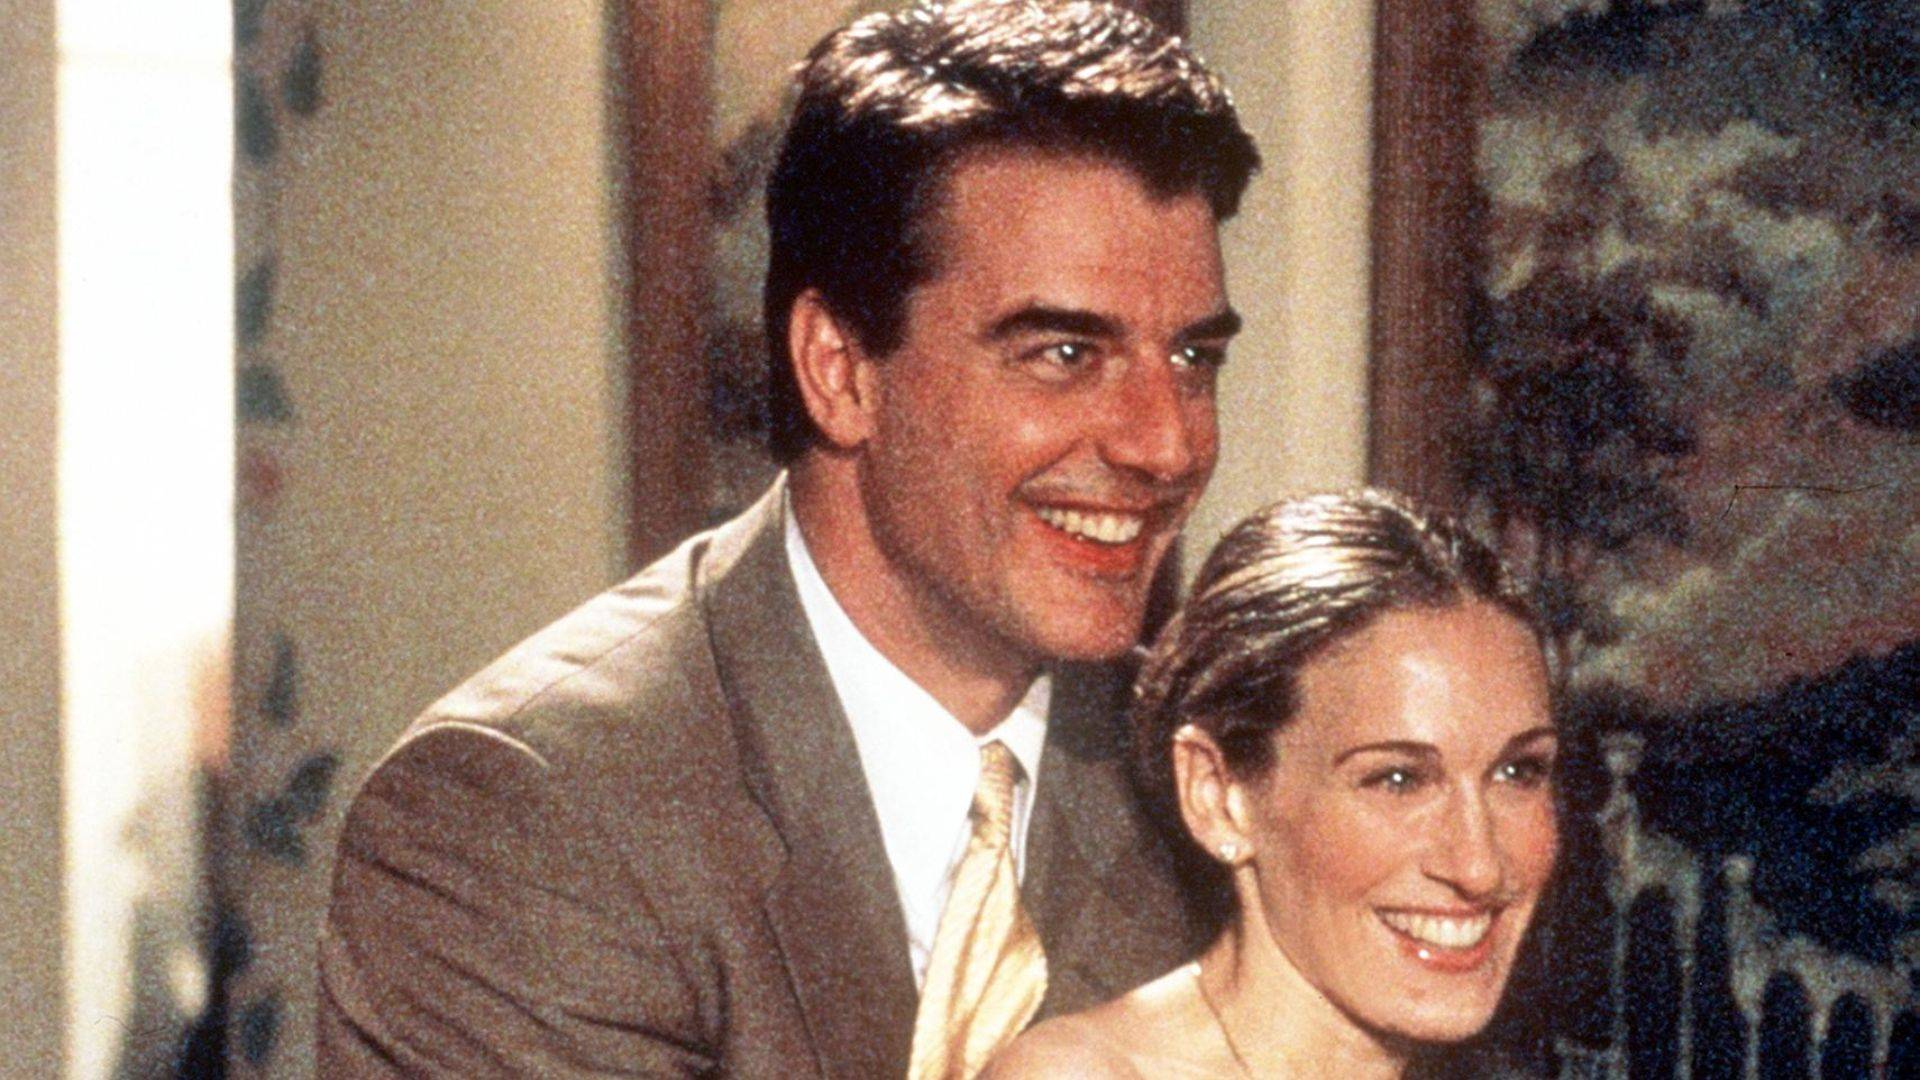 Carrie e Mr. Big (Sex and the City), foto: Getty Images